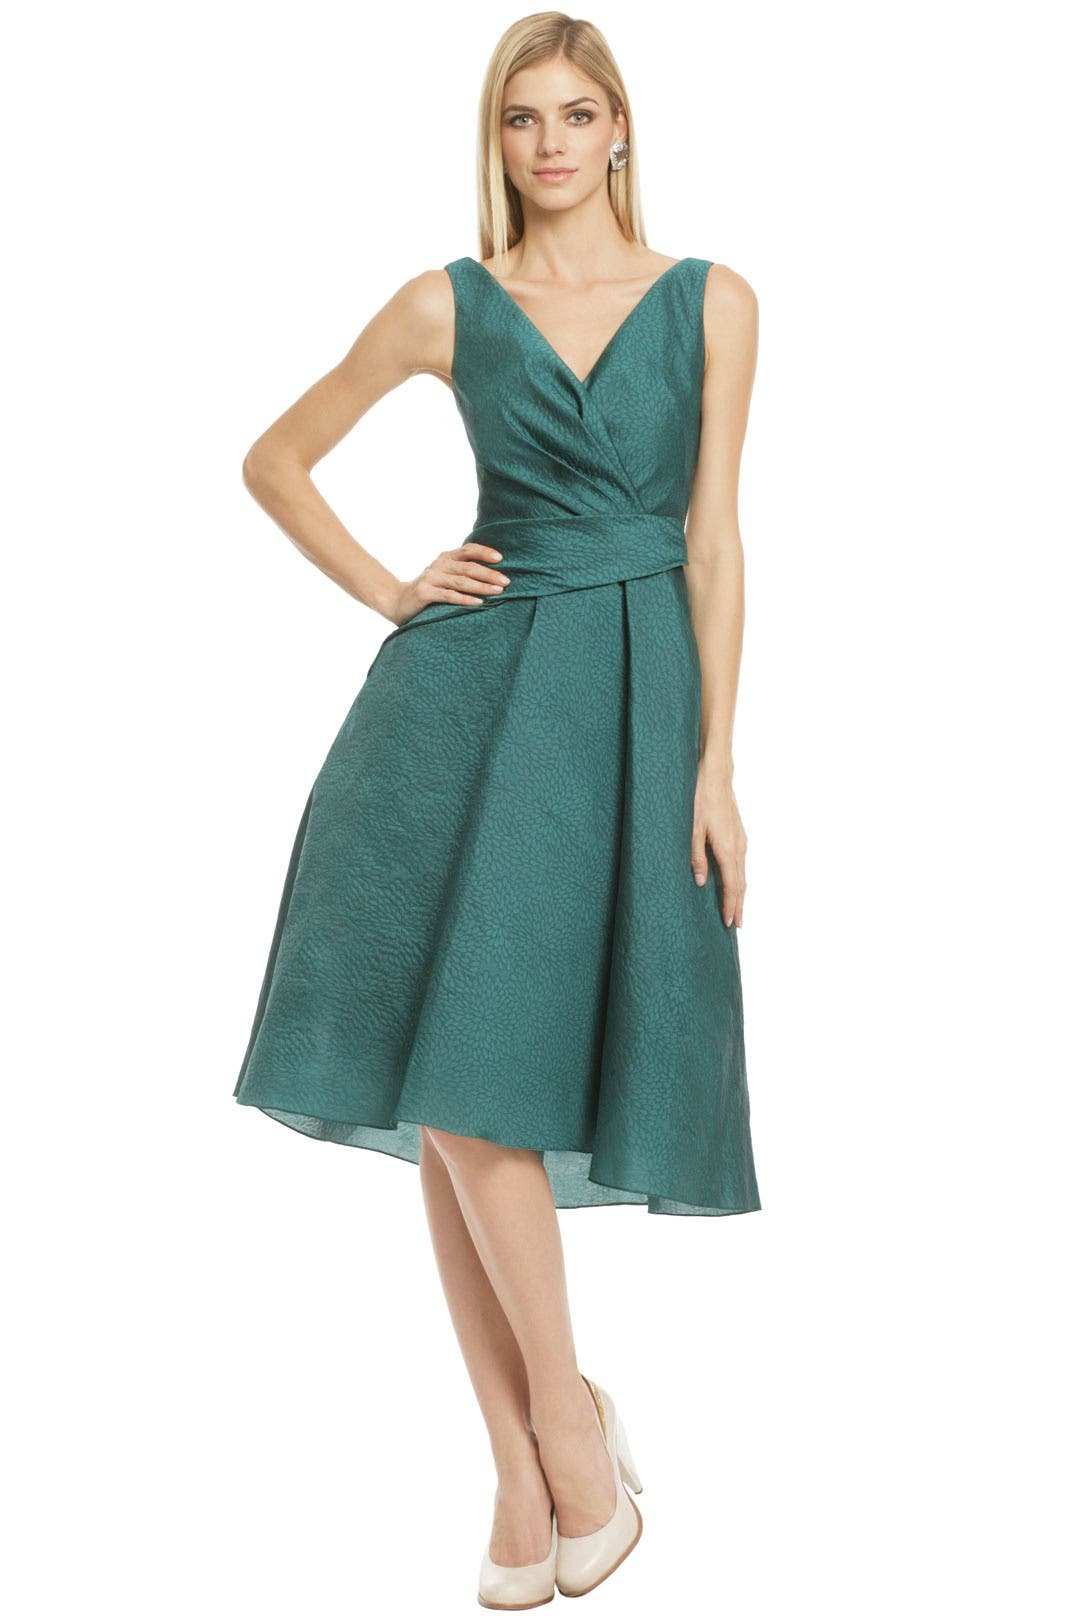 Lovebirds Dress by Lela Rose for $168 | Rent the Runway